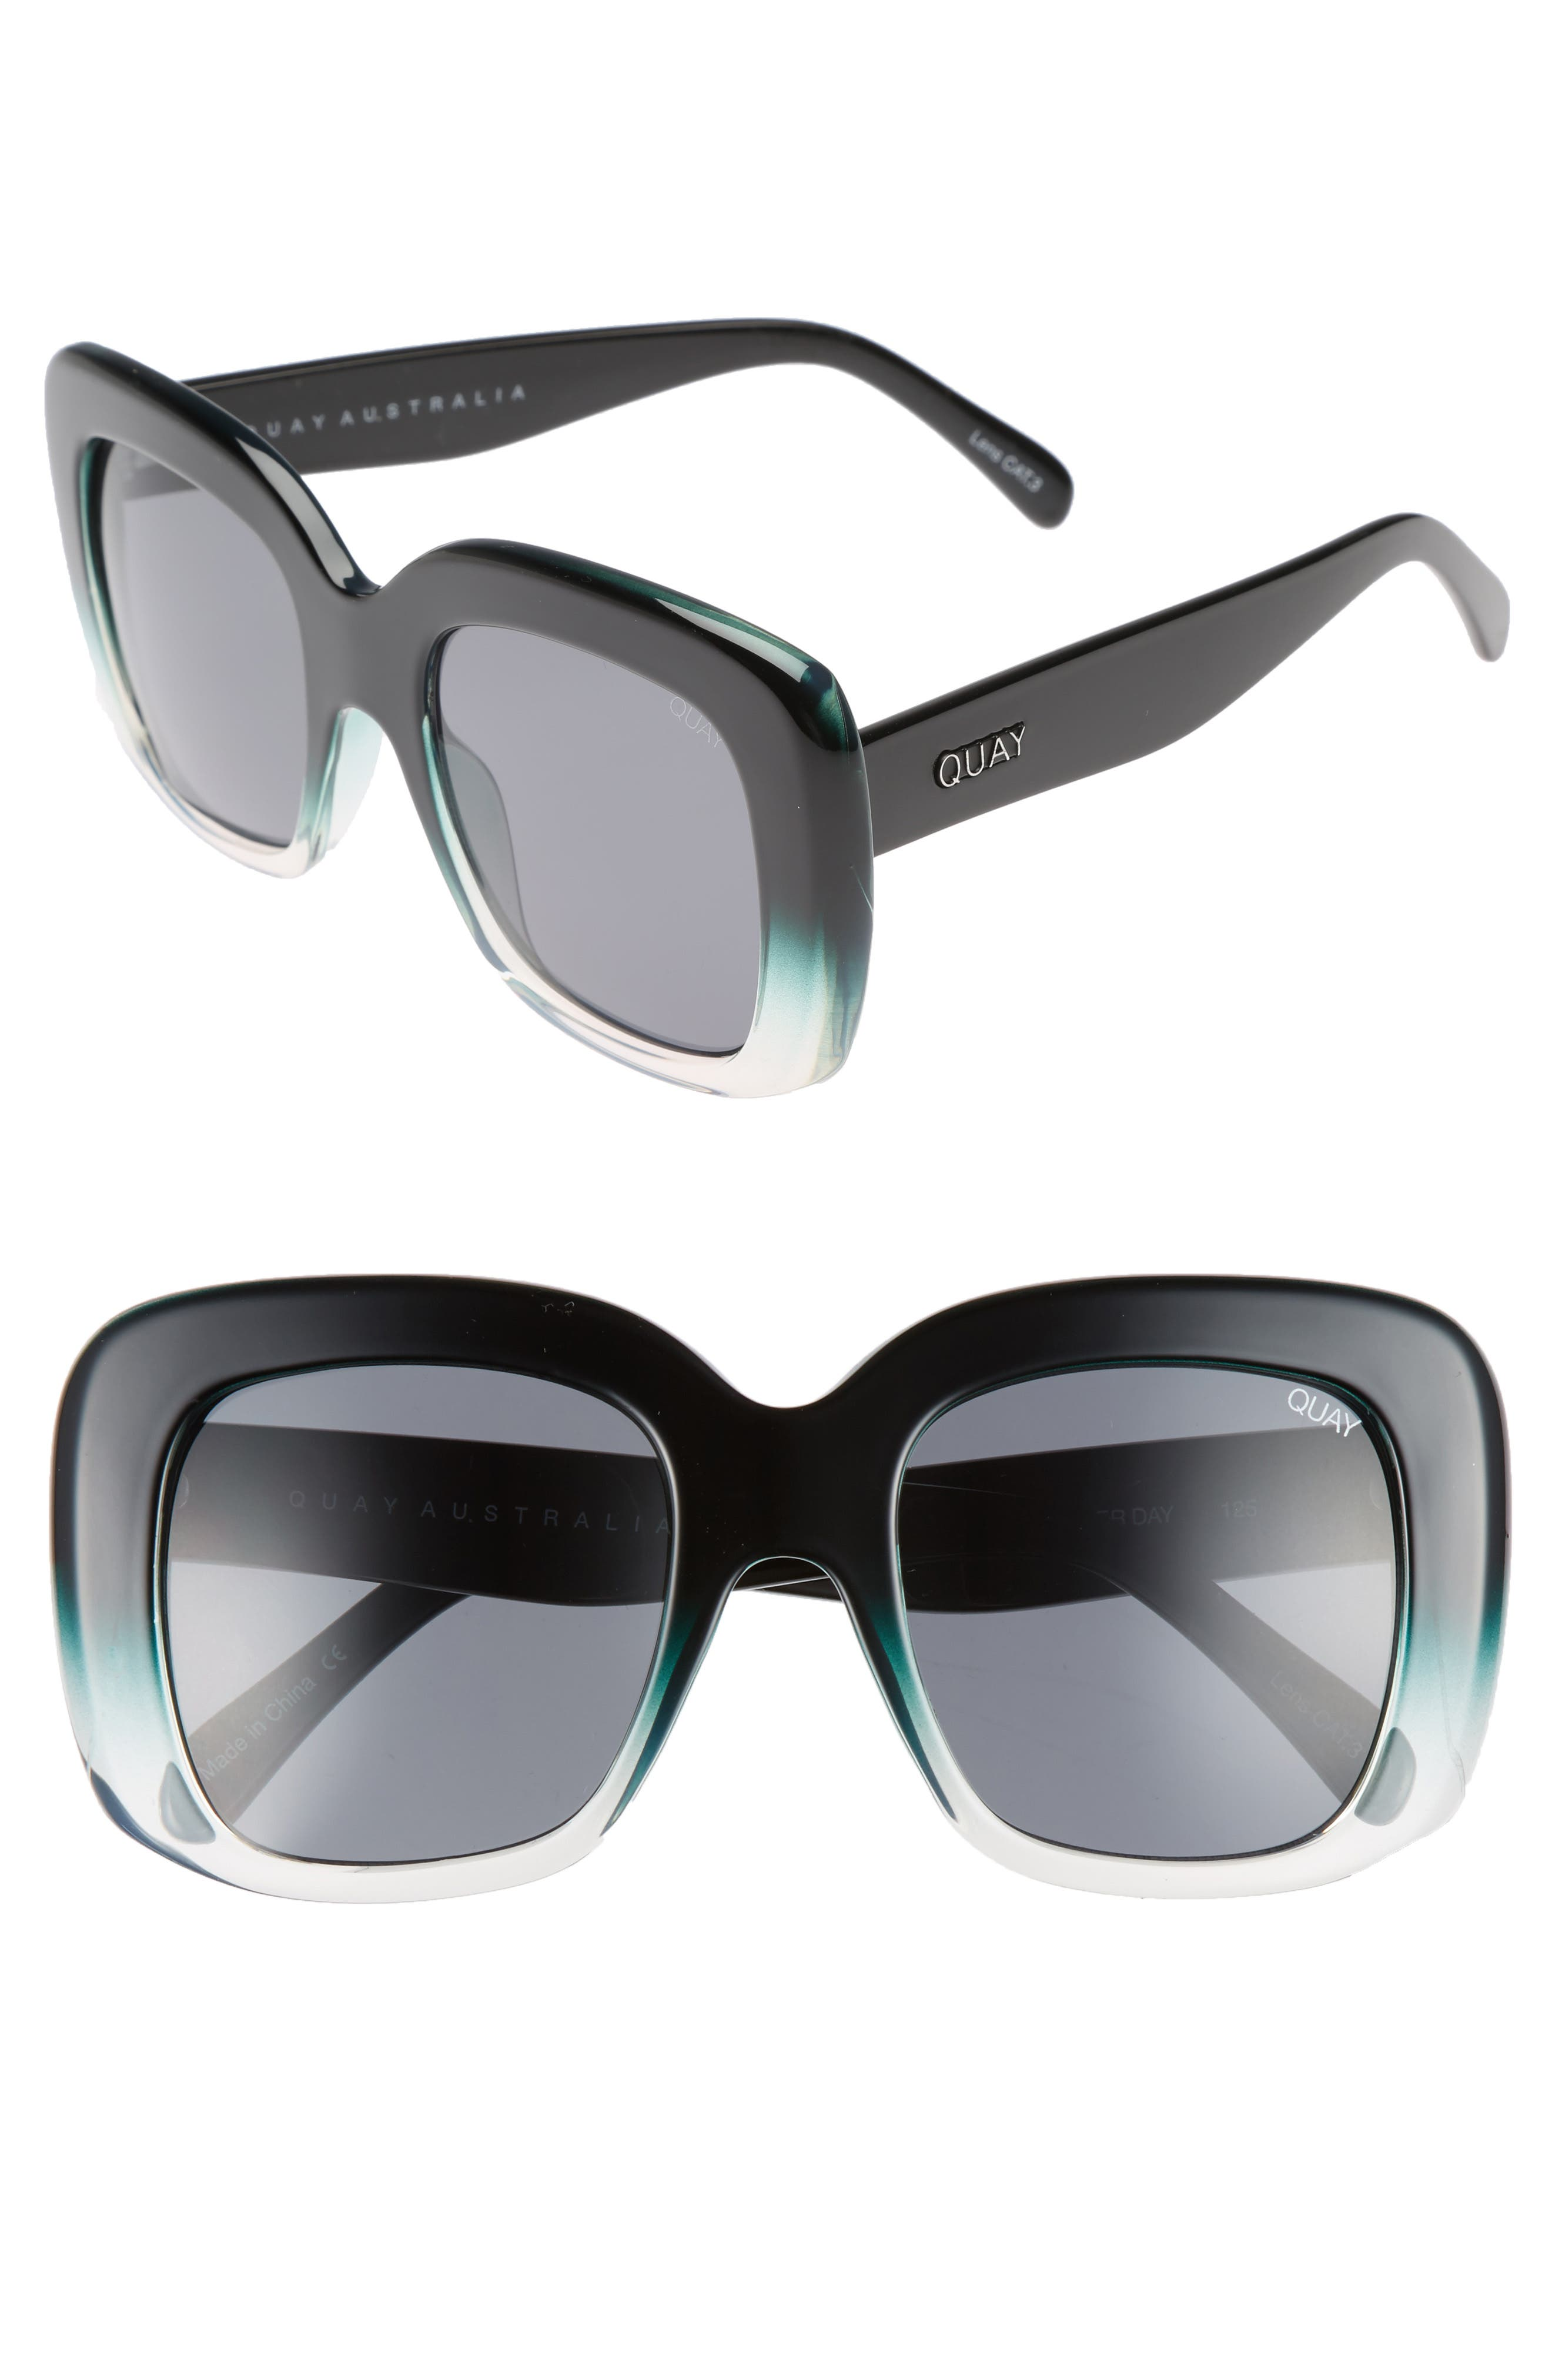 Day After Day 53mm Square Sunglasses,                             Main thumbnail 1, color,                             Black/ Green Smoke